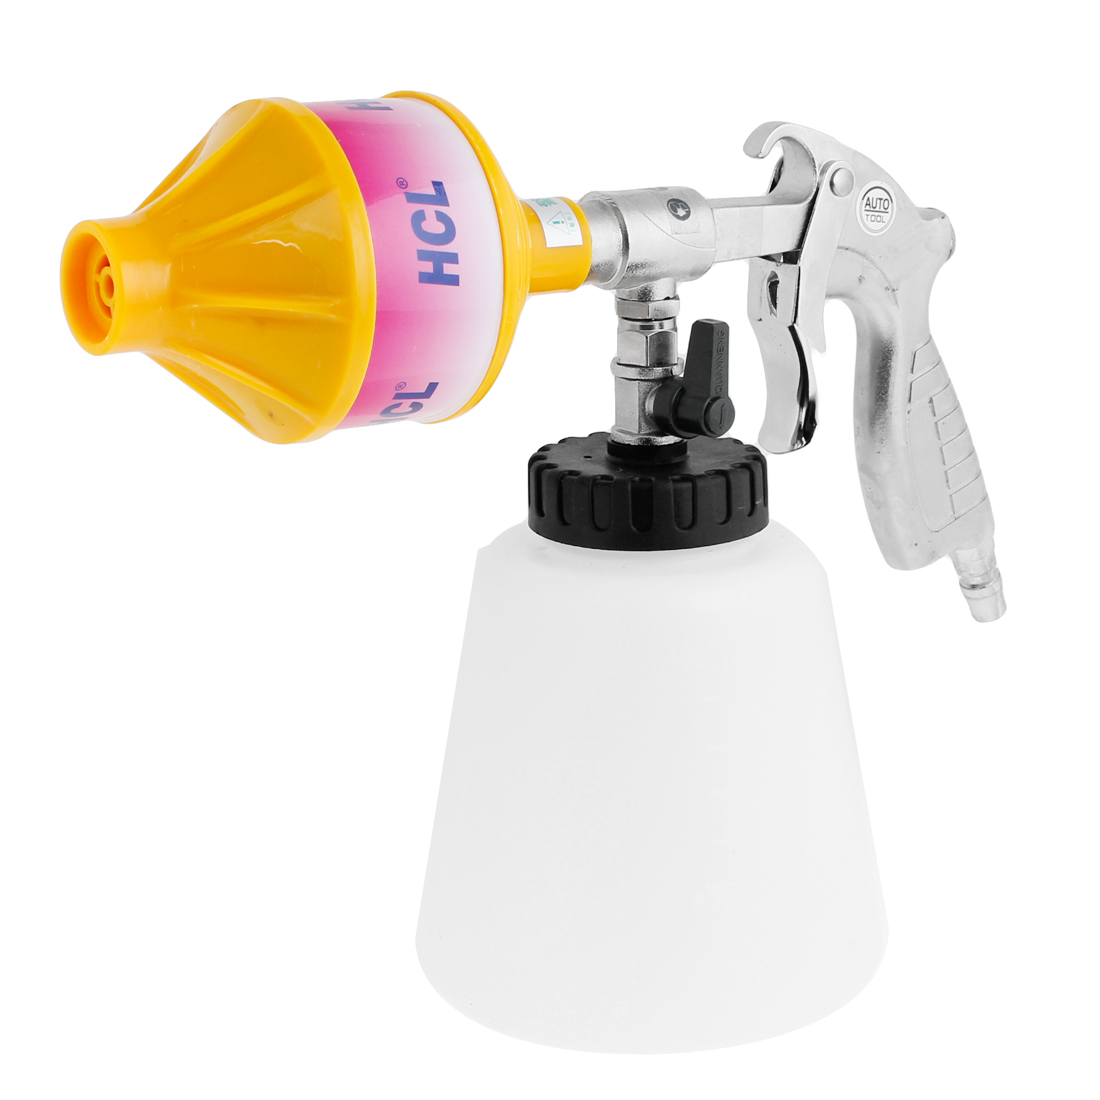 Auto Car Pulse Foam Cleaning Gun Cleaner w Plastic Bottle